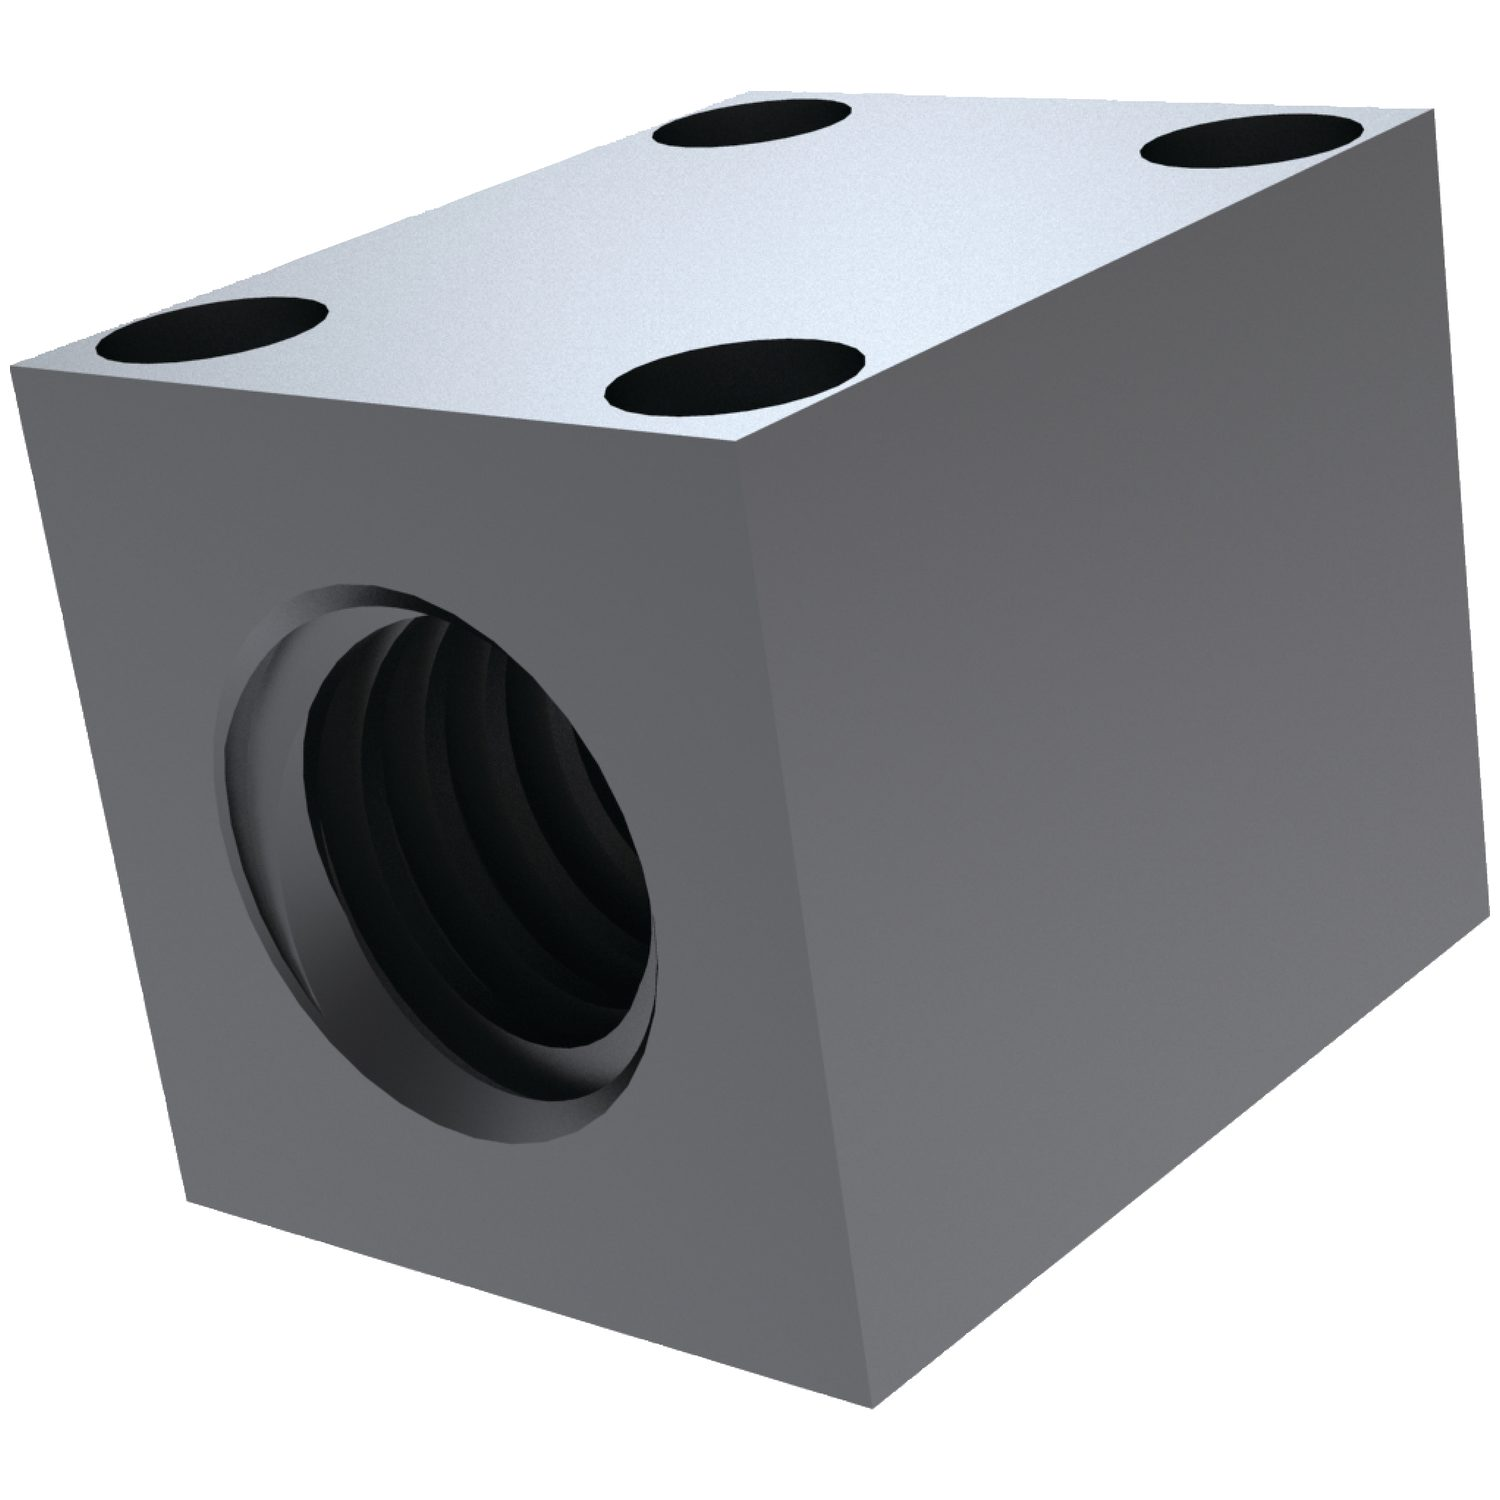 L1337 - Square Steel Nut with Holes